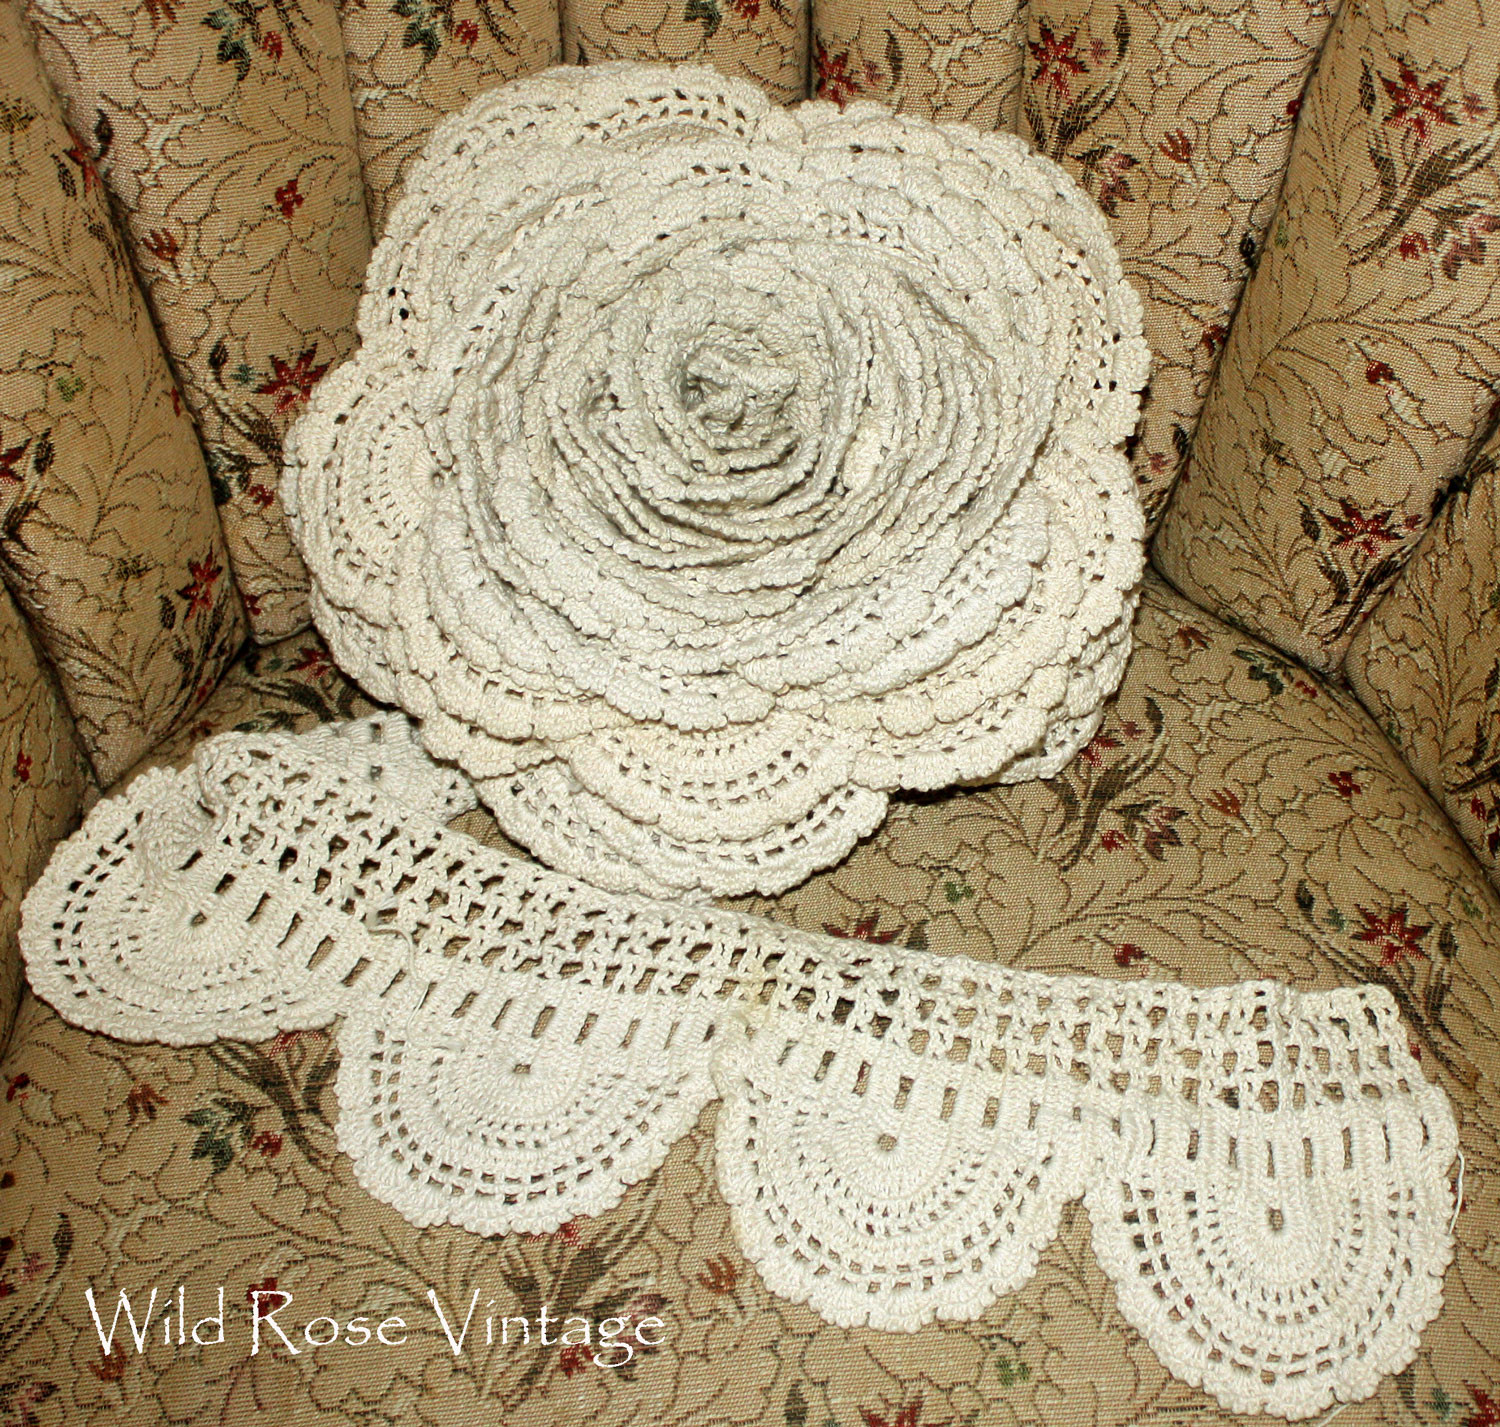 Best Of Wild Rose Vintage Giant Crochet Lace Rose and Other Treasures Laces Crochet Of Beautiful 47 Images Laces Crochet